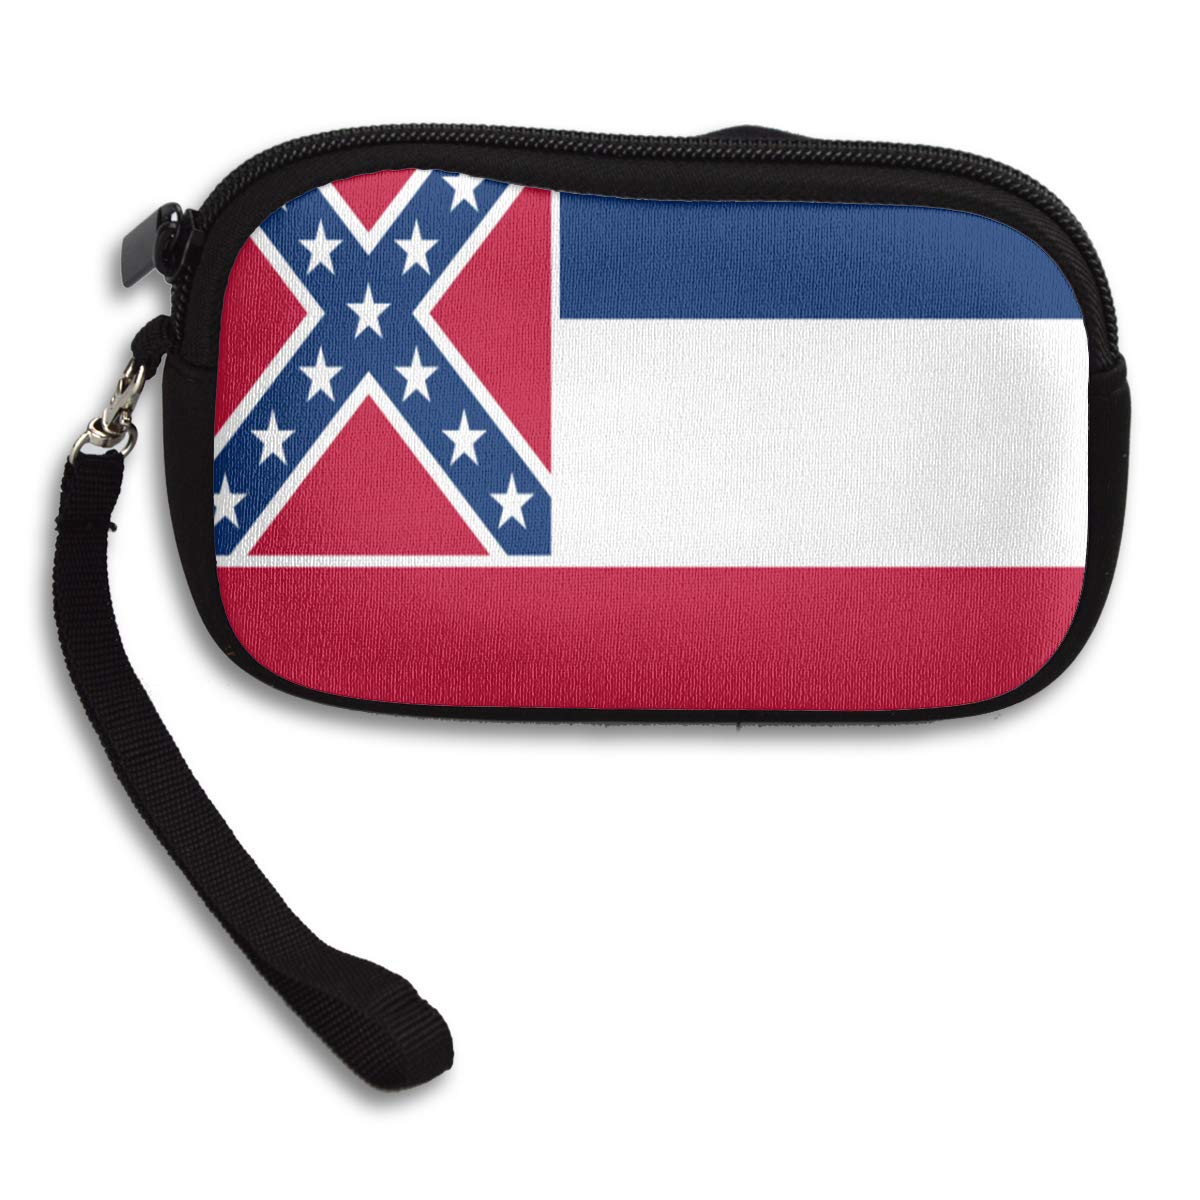 Mississippi State Flag Coin Purse Cute Change Purse,Make Up Bag,Cellphone Bag With Handle Purses For Women